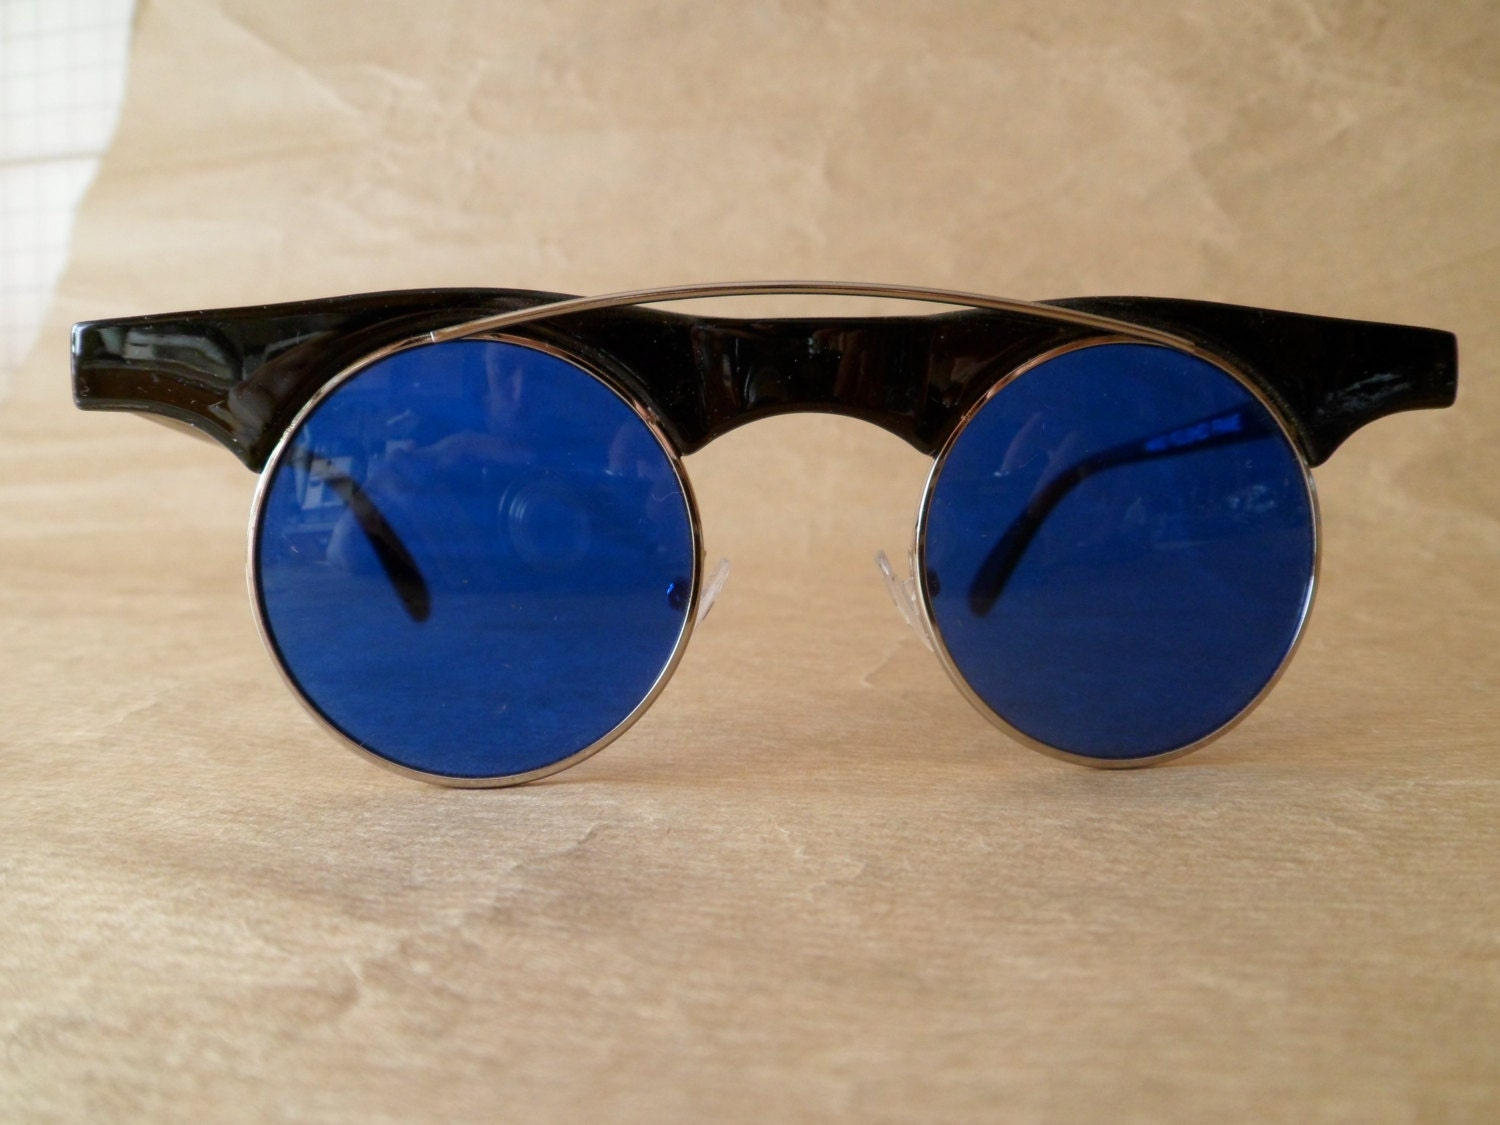 Vintage from deadstock round plastic sunglasses with metal bridge - only BLUE steampunk buy now online